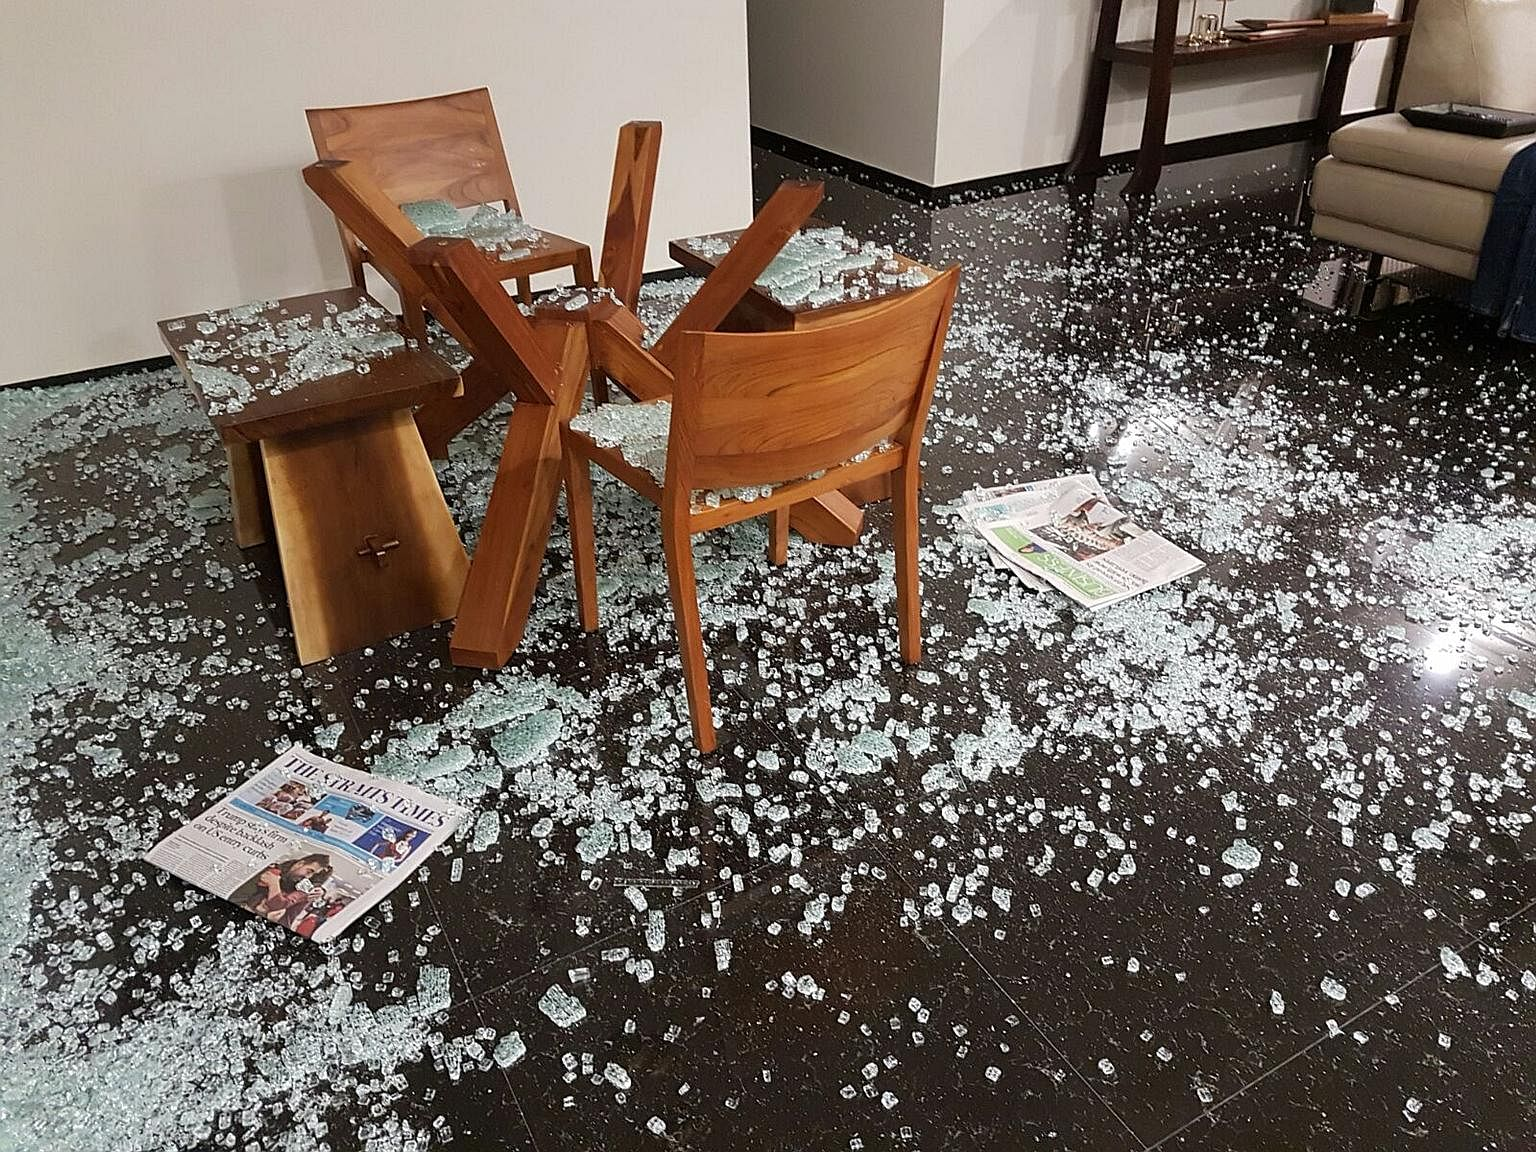 Home Owners Report Cases Of Shattering Glass Tops And Mouldy Wardrobes Singapore News Top Stories The Straits Times